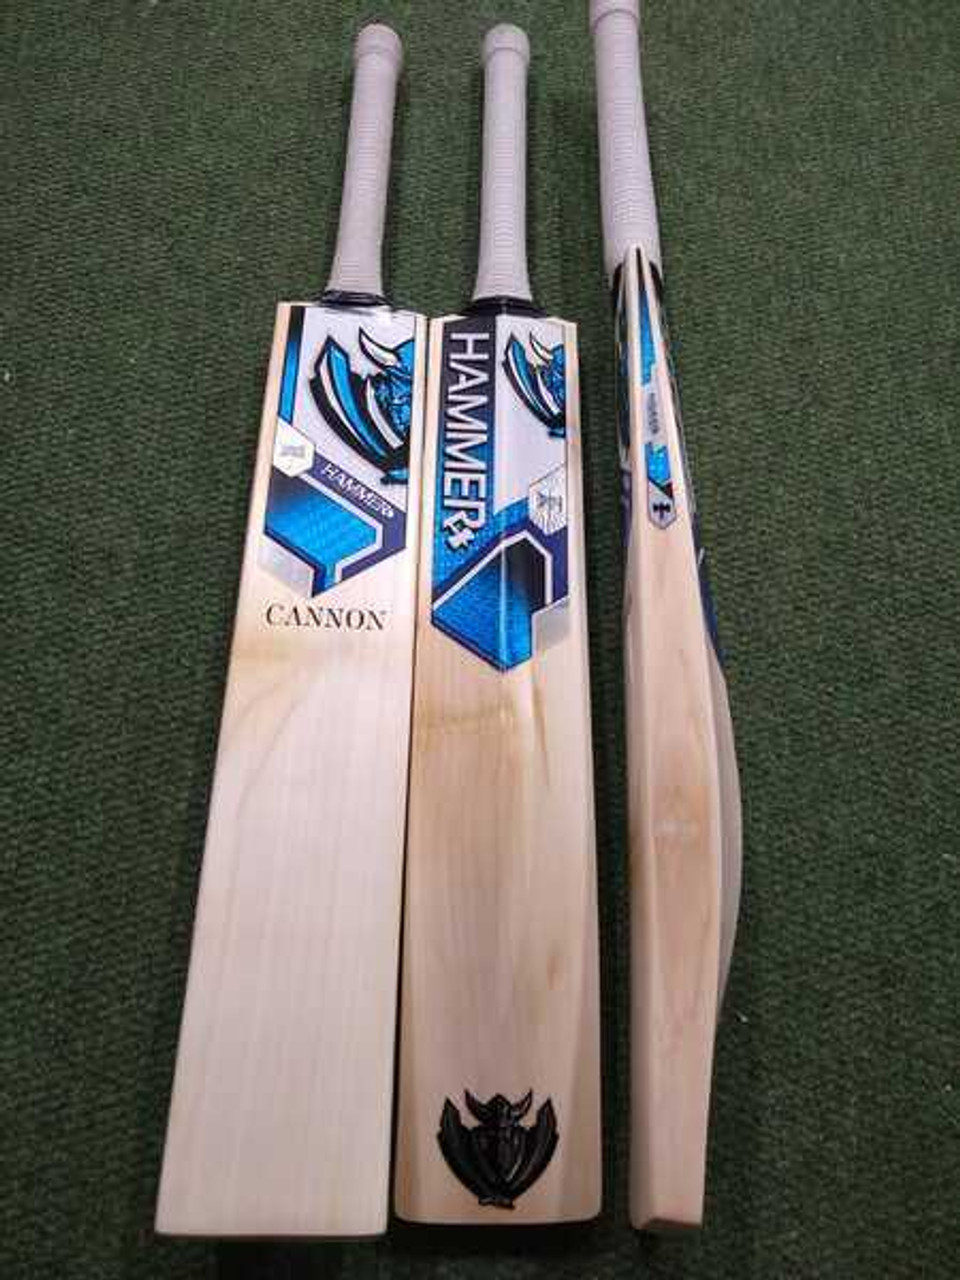 Hammer CANNON Cricket Bat 2021